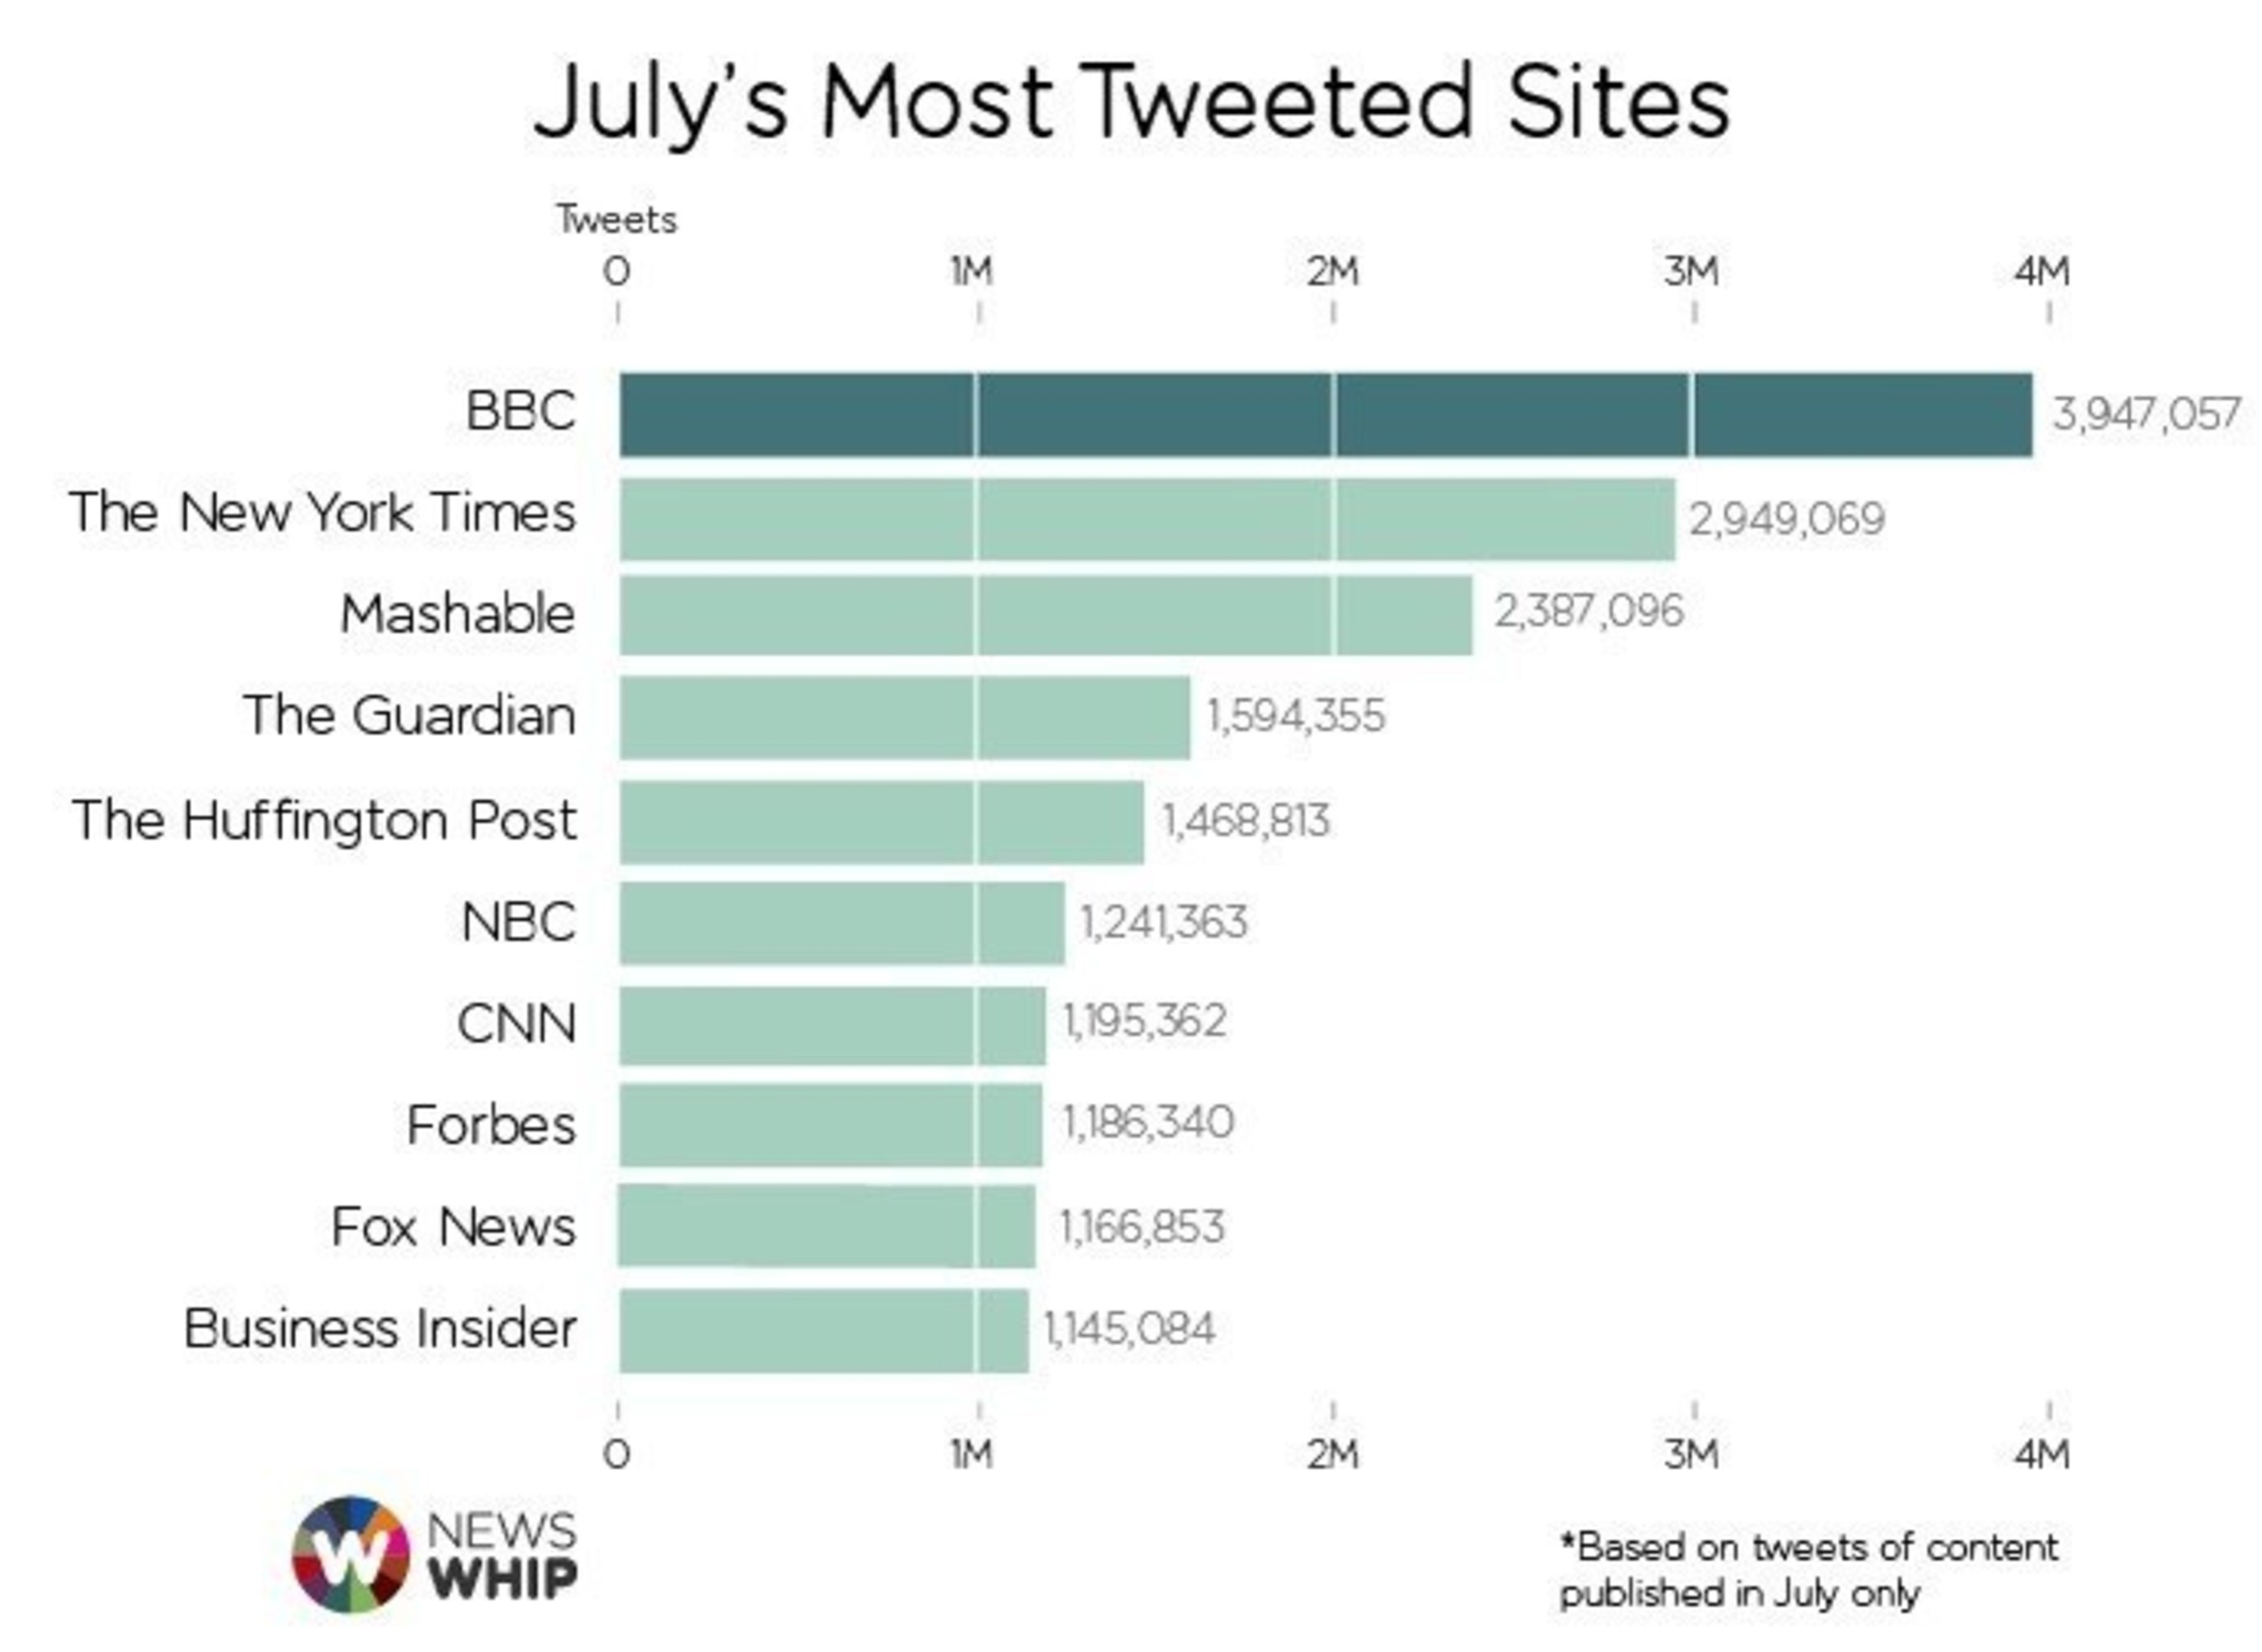 BBC attracts almost 4 million tweets for Twitter success in July